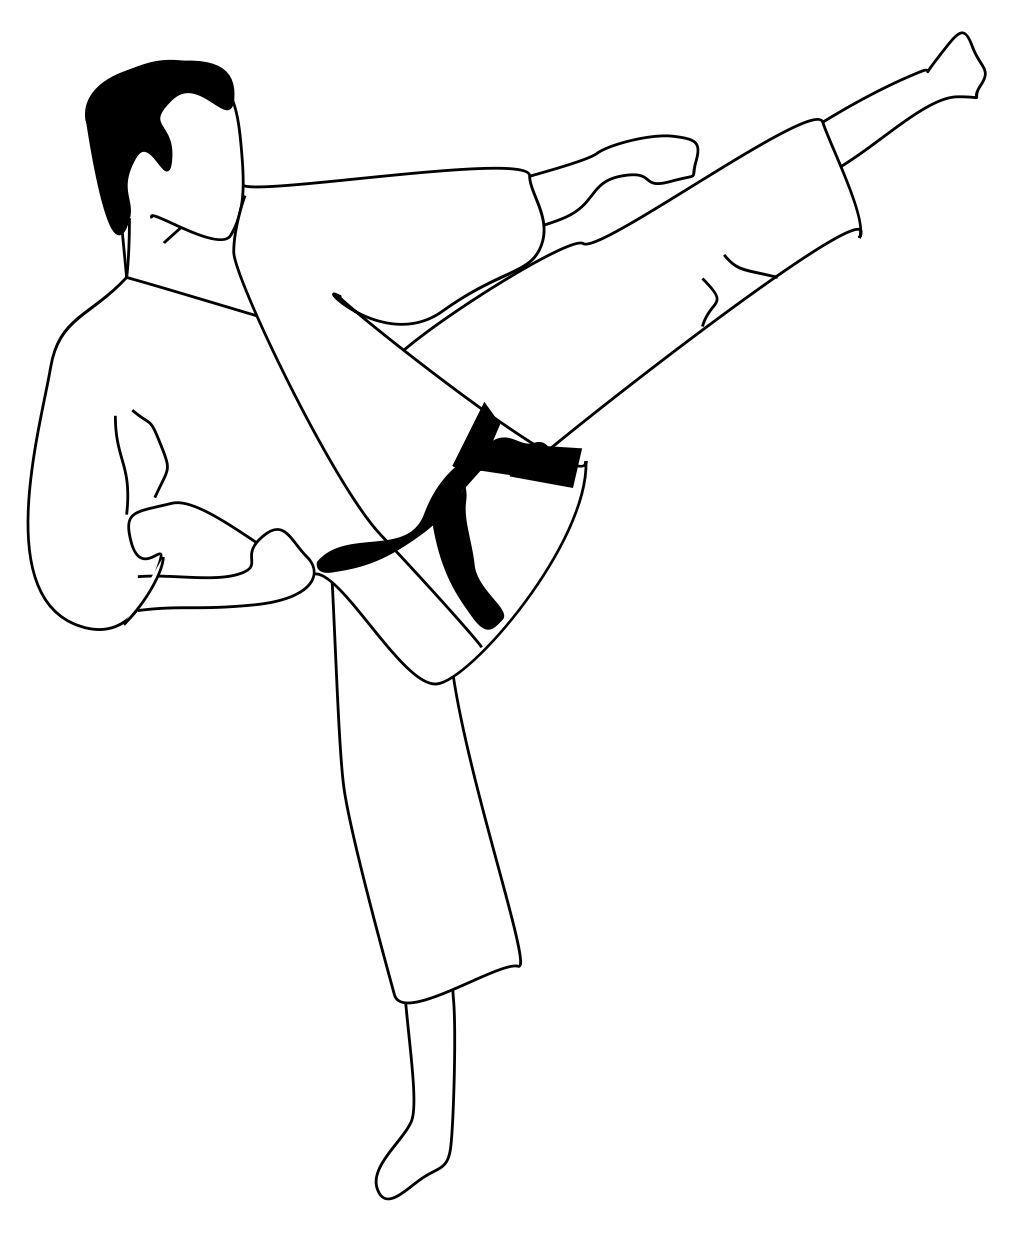 Color Karate Printables Karate Coloring Pages Karate In 2020 Coloring Pages Karate Karate Images